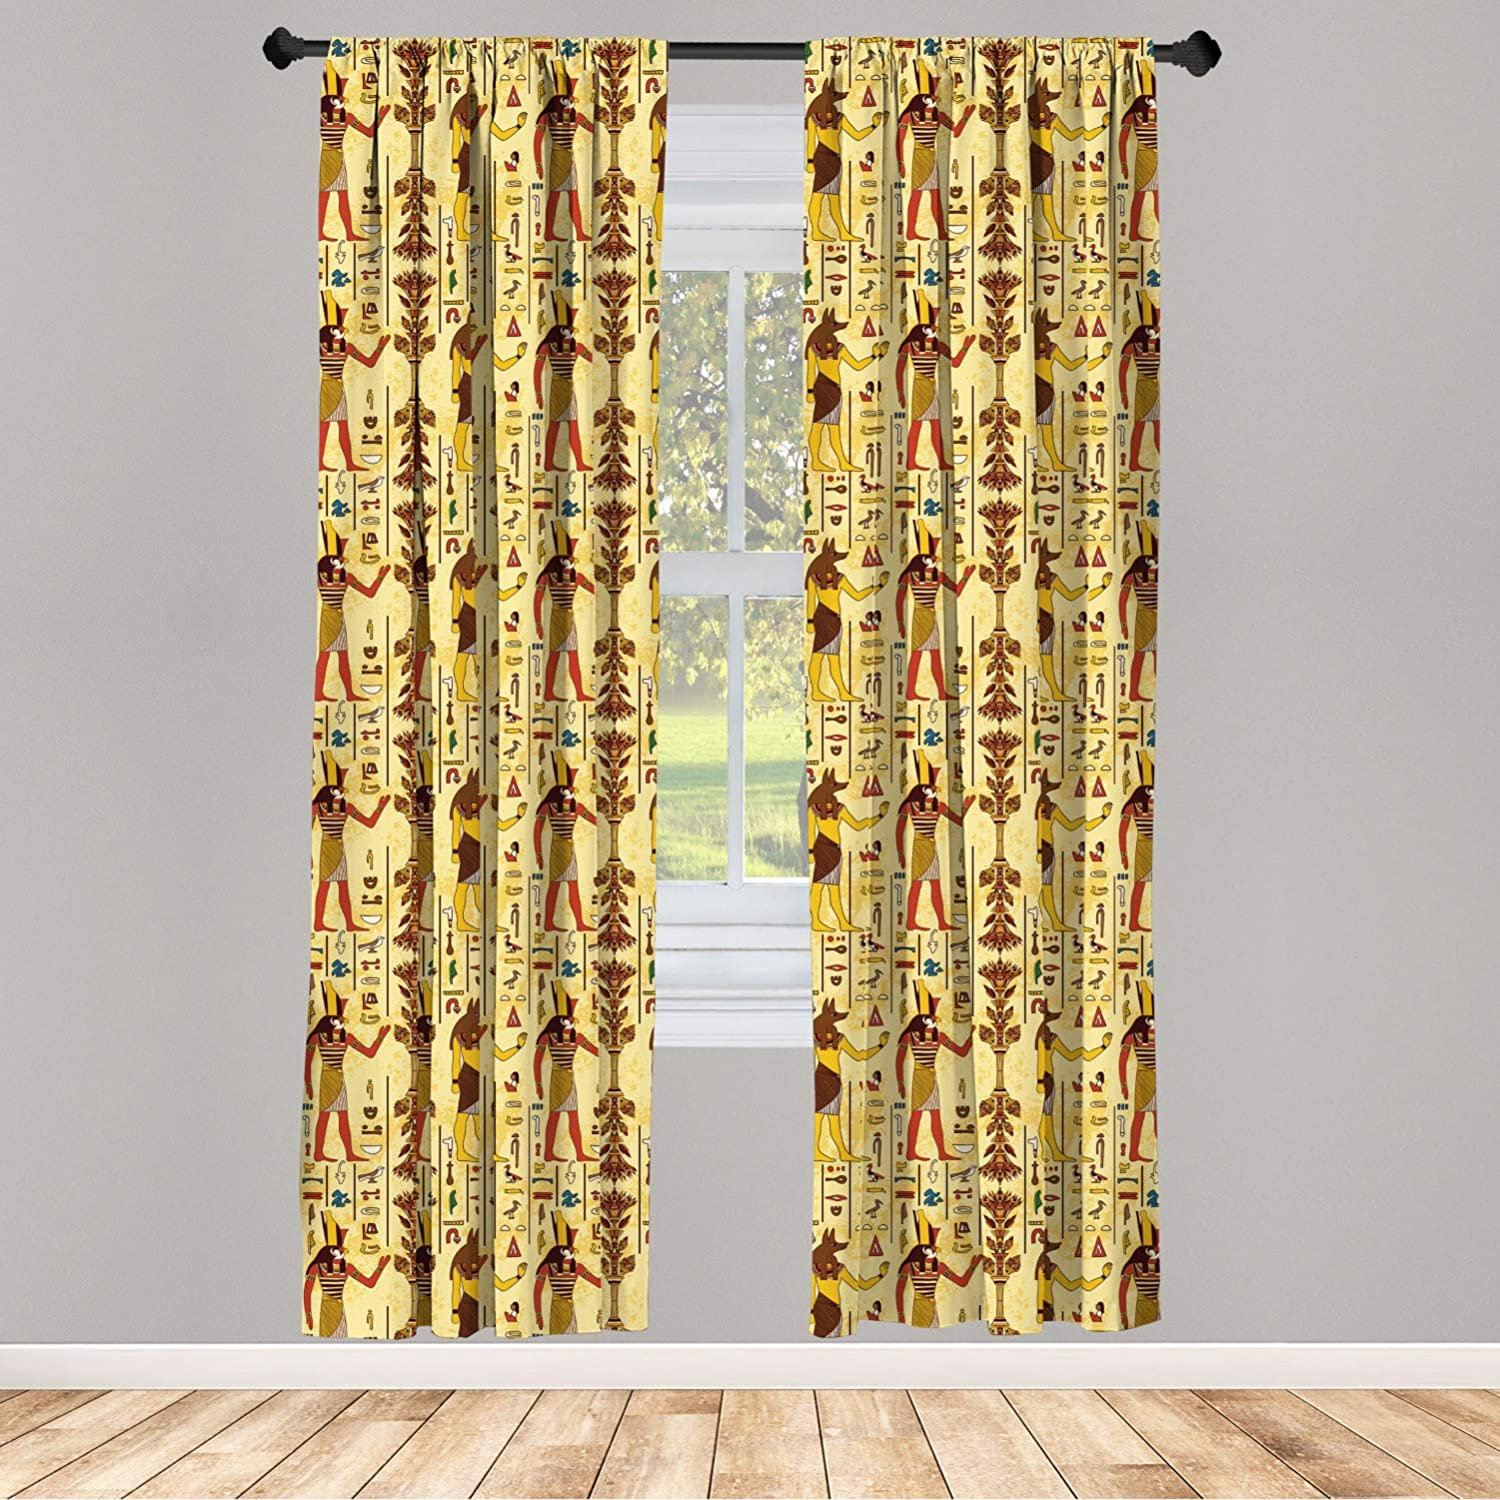 Ambesonne Egyptian Print Window Curtain, Grunge Aged Paper Style Backdrop with Retro Characters and Hieroglyphs, Lightweight Decorative Panels Set of 2 with Rod Pocket, 56 x 63, Rainbow Colors